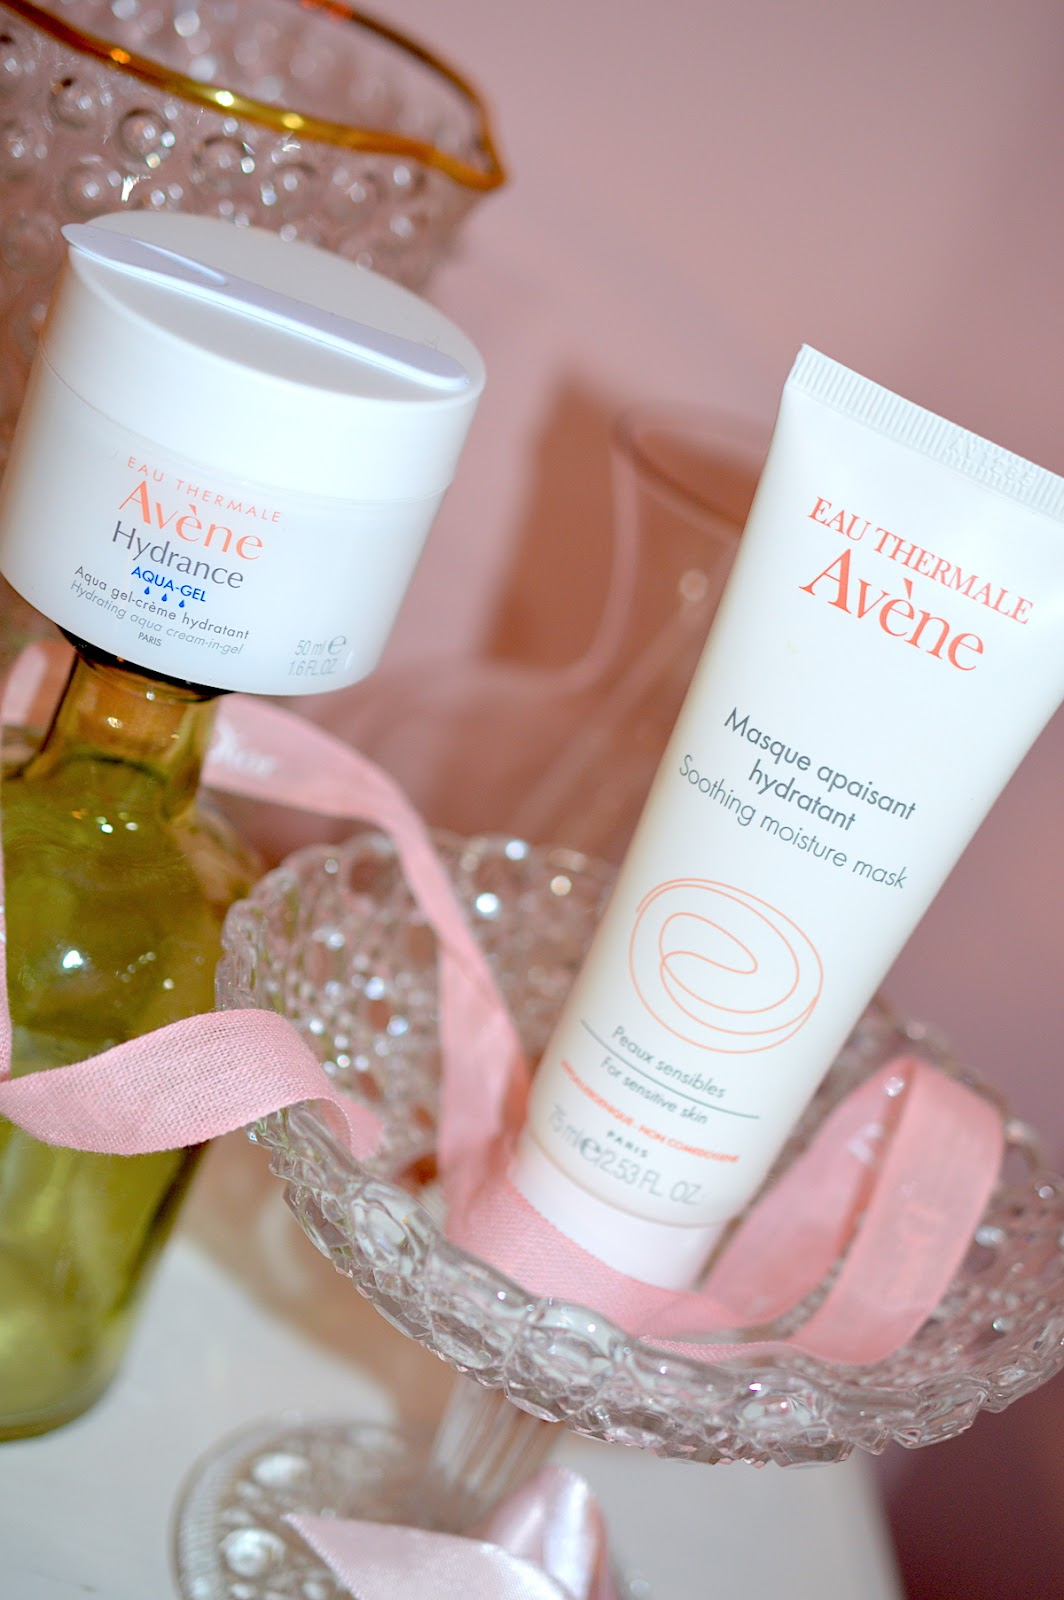 Avène Hydrance Aqua Cream-In-Gel Review